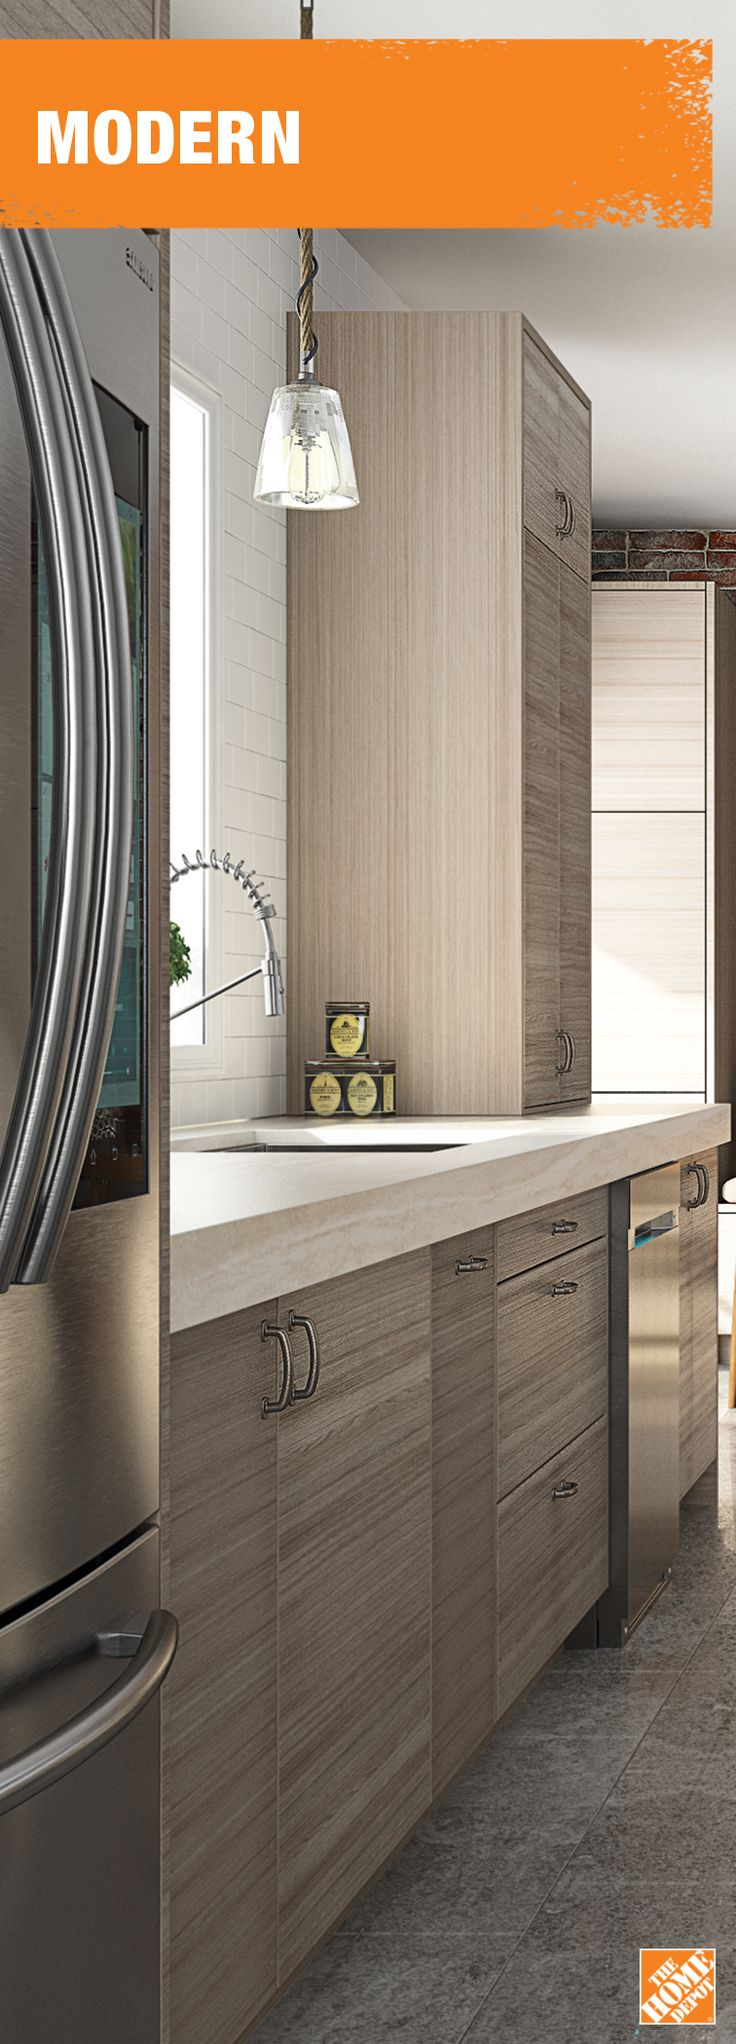 from homedepotca Naturally finished cabinets are